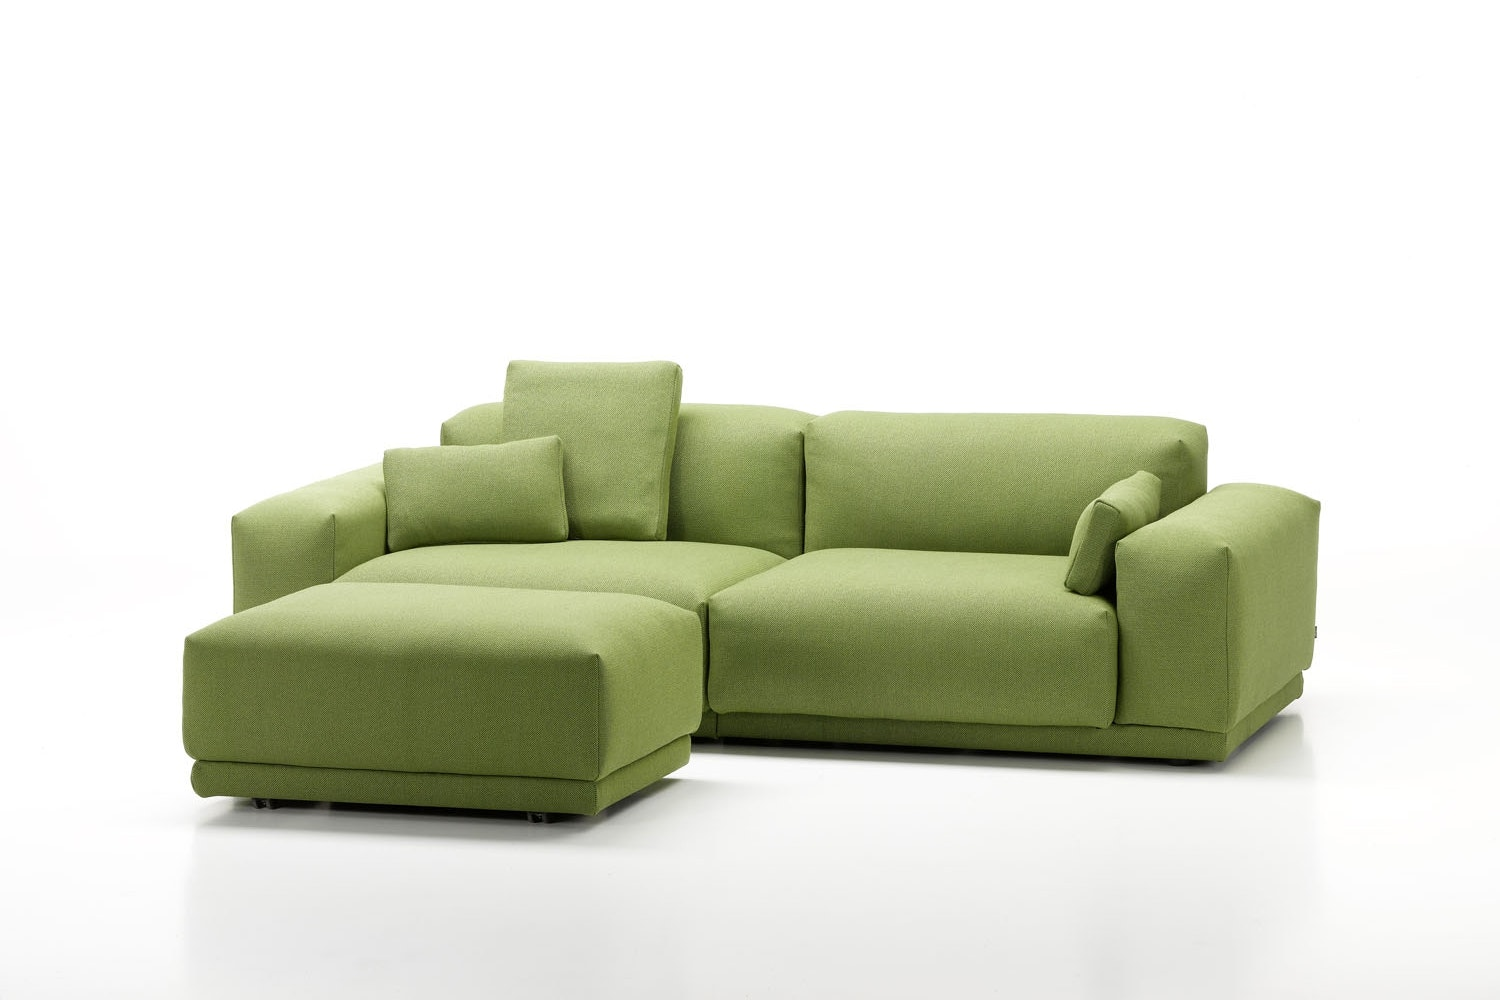 Place Sofa by Jasper Morrison for Vitra